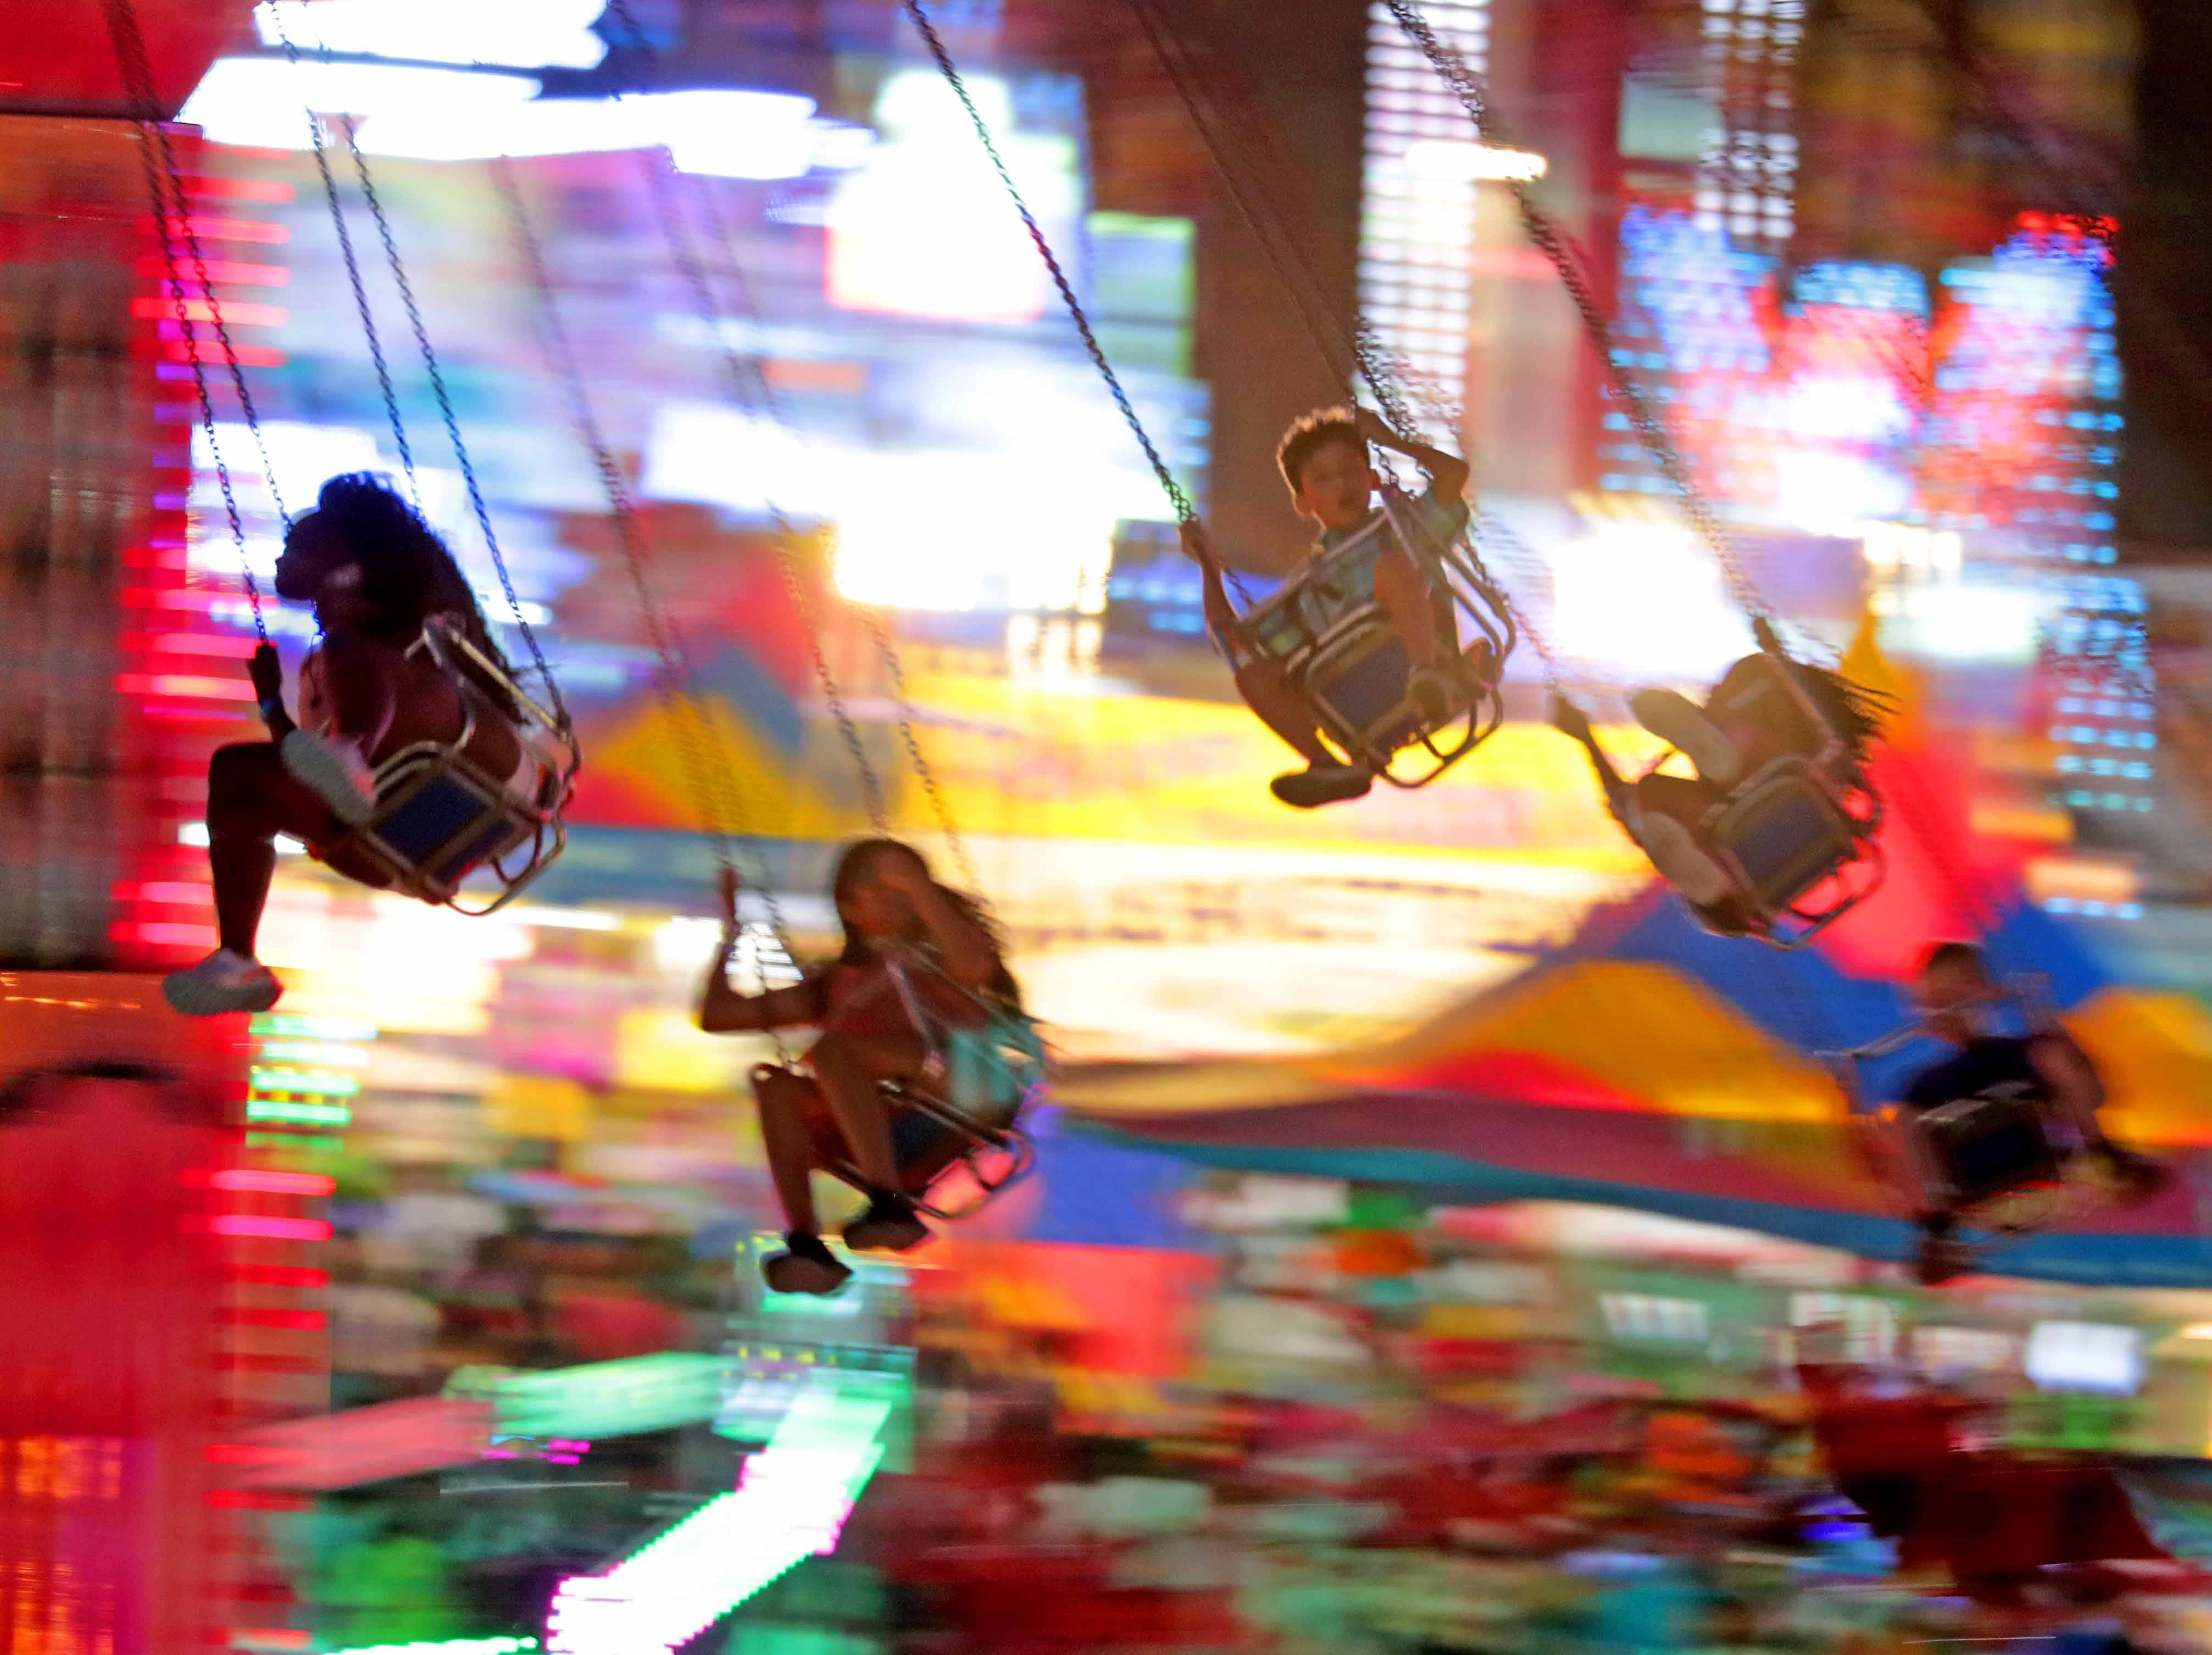 Fairgoers enjoy the swing ride in SpinCity at the Wisconsin State Fair.